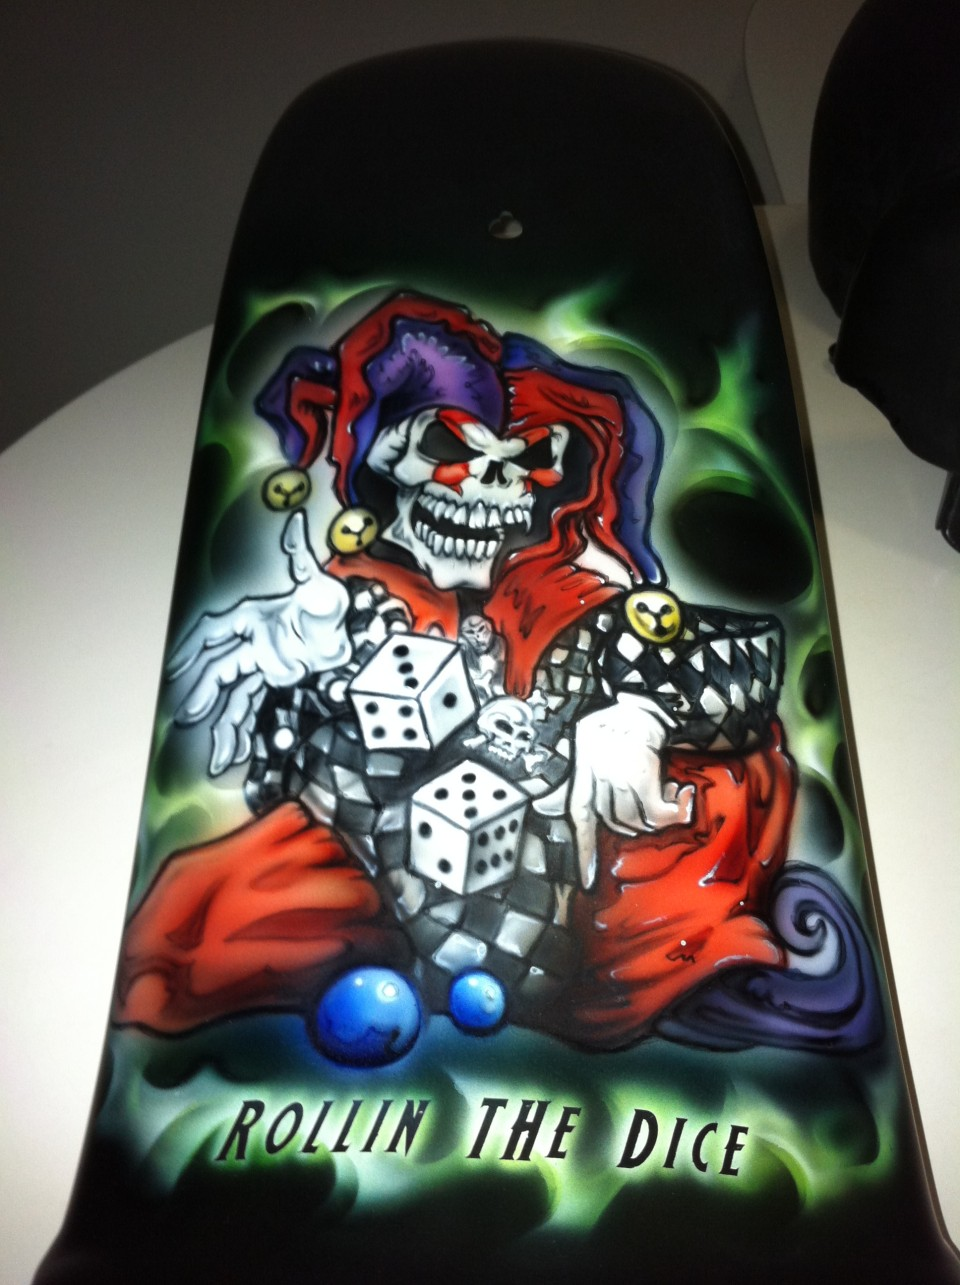 airbrush art-joker and dice-airbrush joker and dice guard